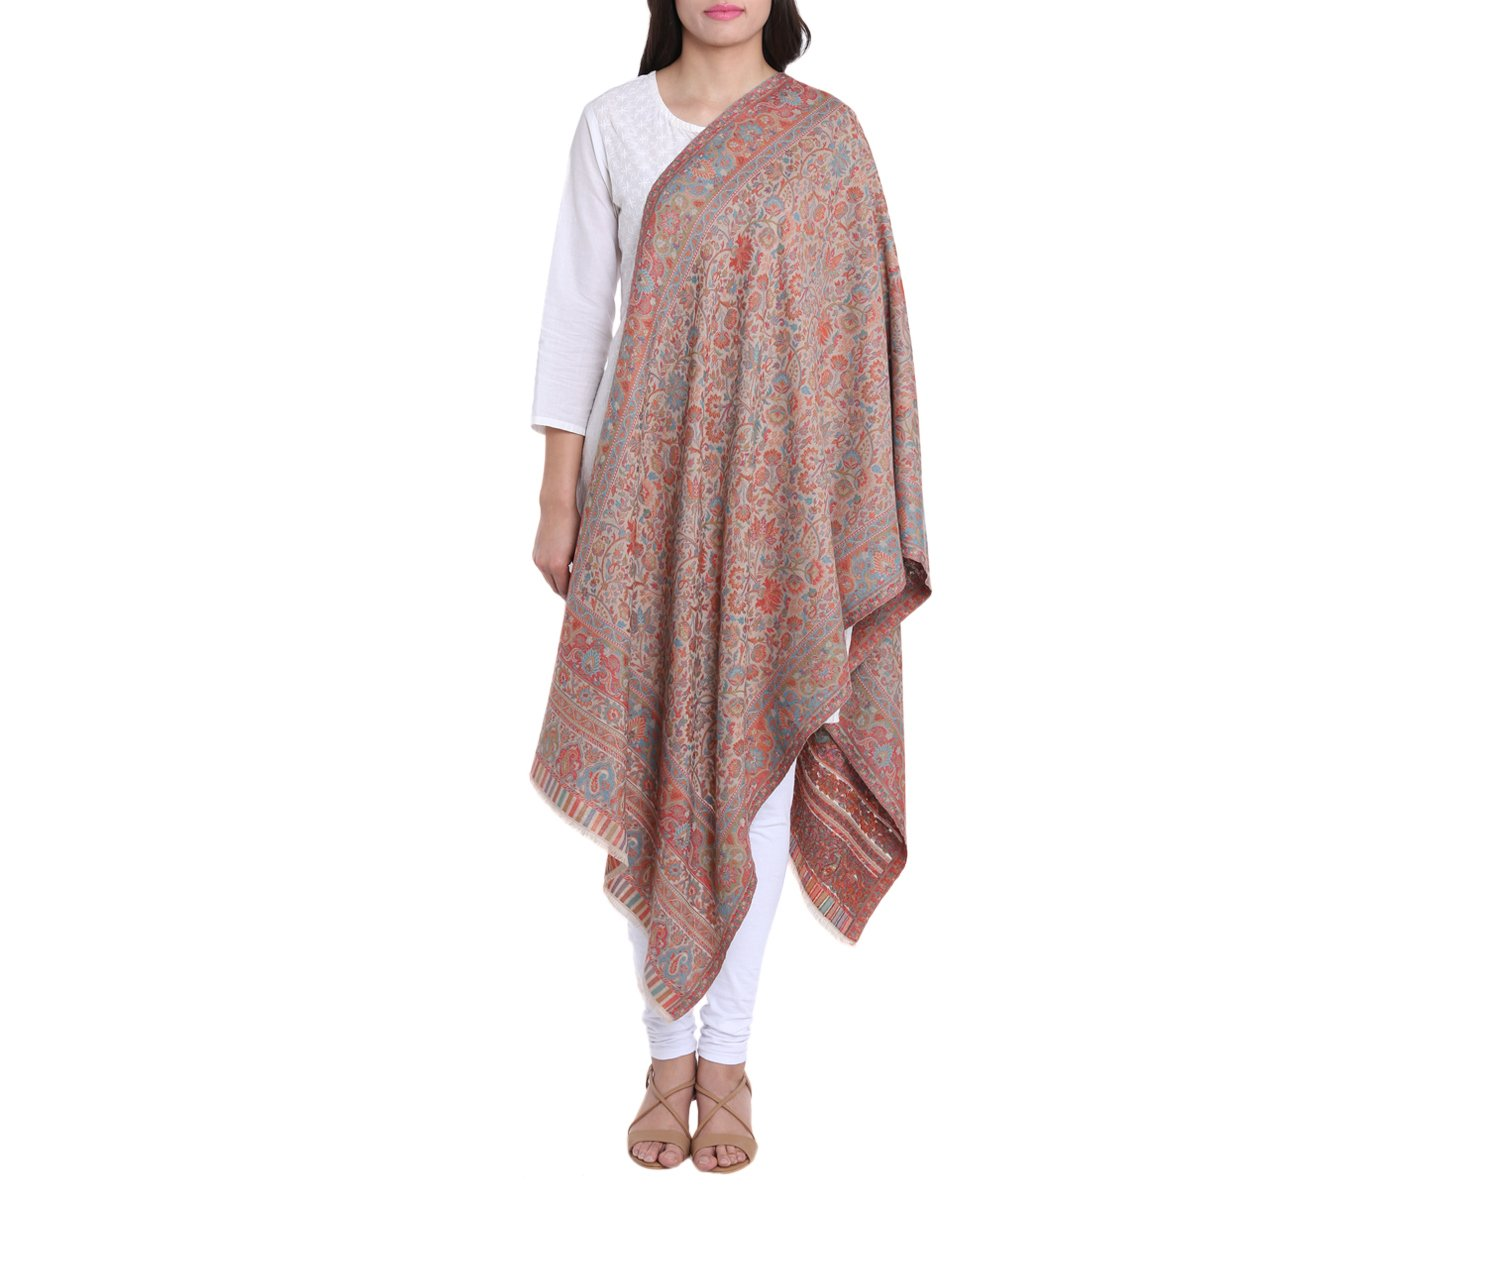 Antique Style Indian Outfits Woolen Kaani Scarf Floral Woven Design Fashion Accessory For Women 27X70 Inch 230 Grams